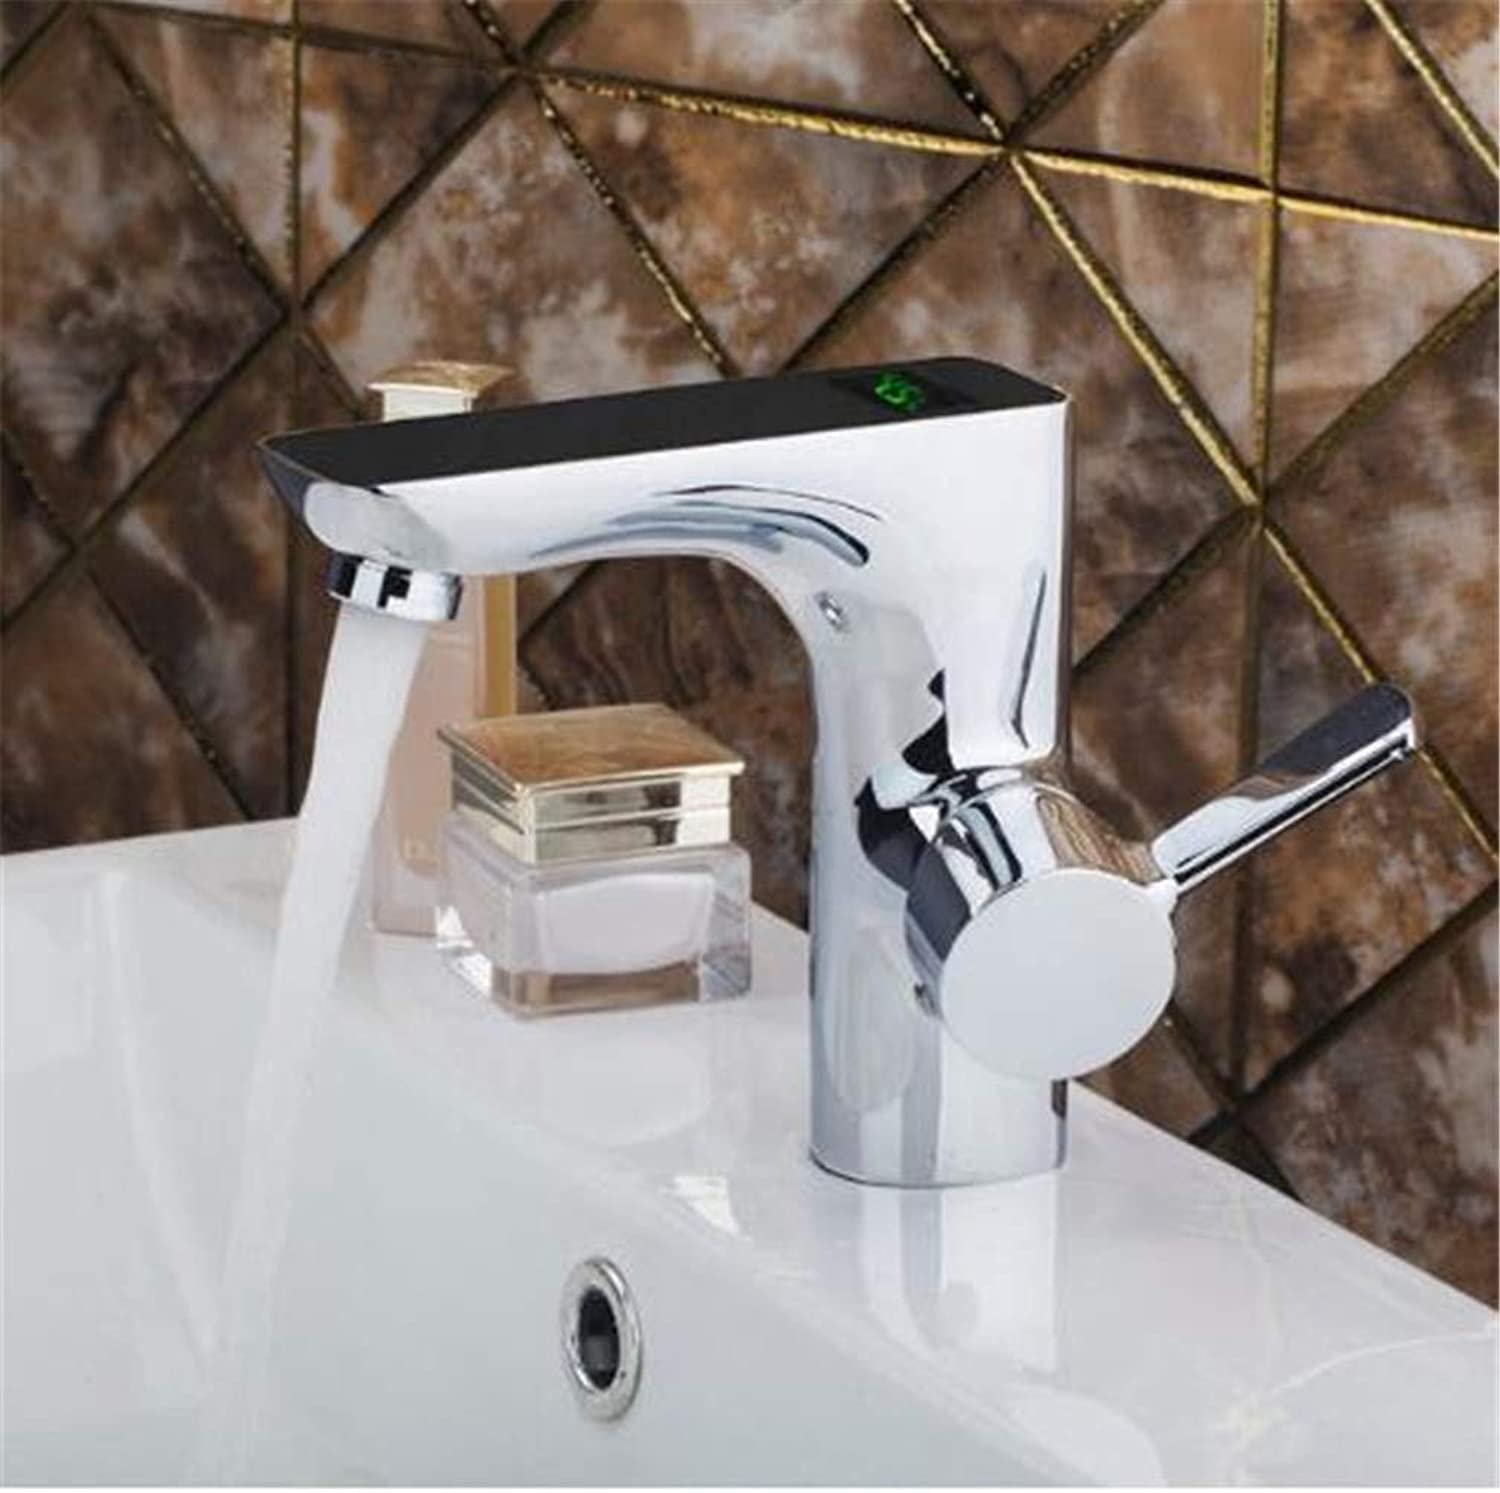 Bathroom Taps Basin Mixer Taps Bathroom Faucet Sinkhot and Cold Digital Display Temperature Hands Temperature Sensor Faucet Bathroom Sink Tap Bathroom Faucet Chrome Brass Material